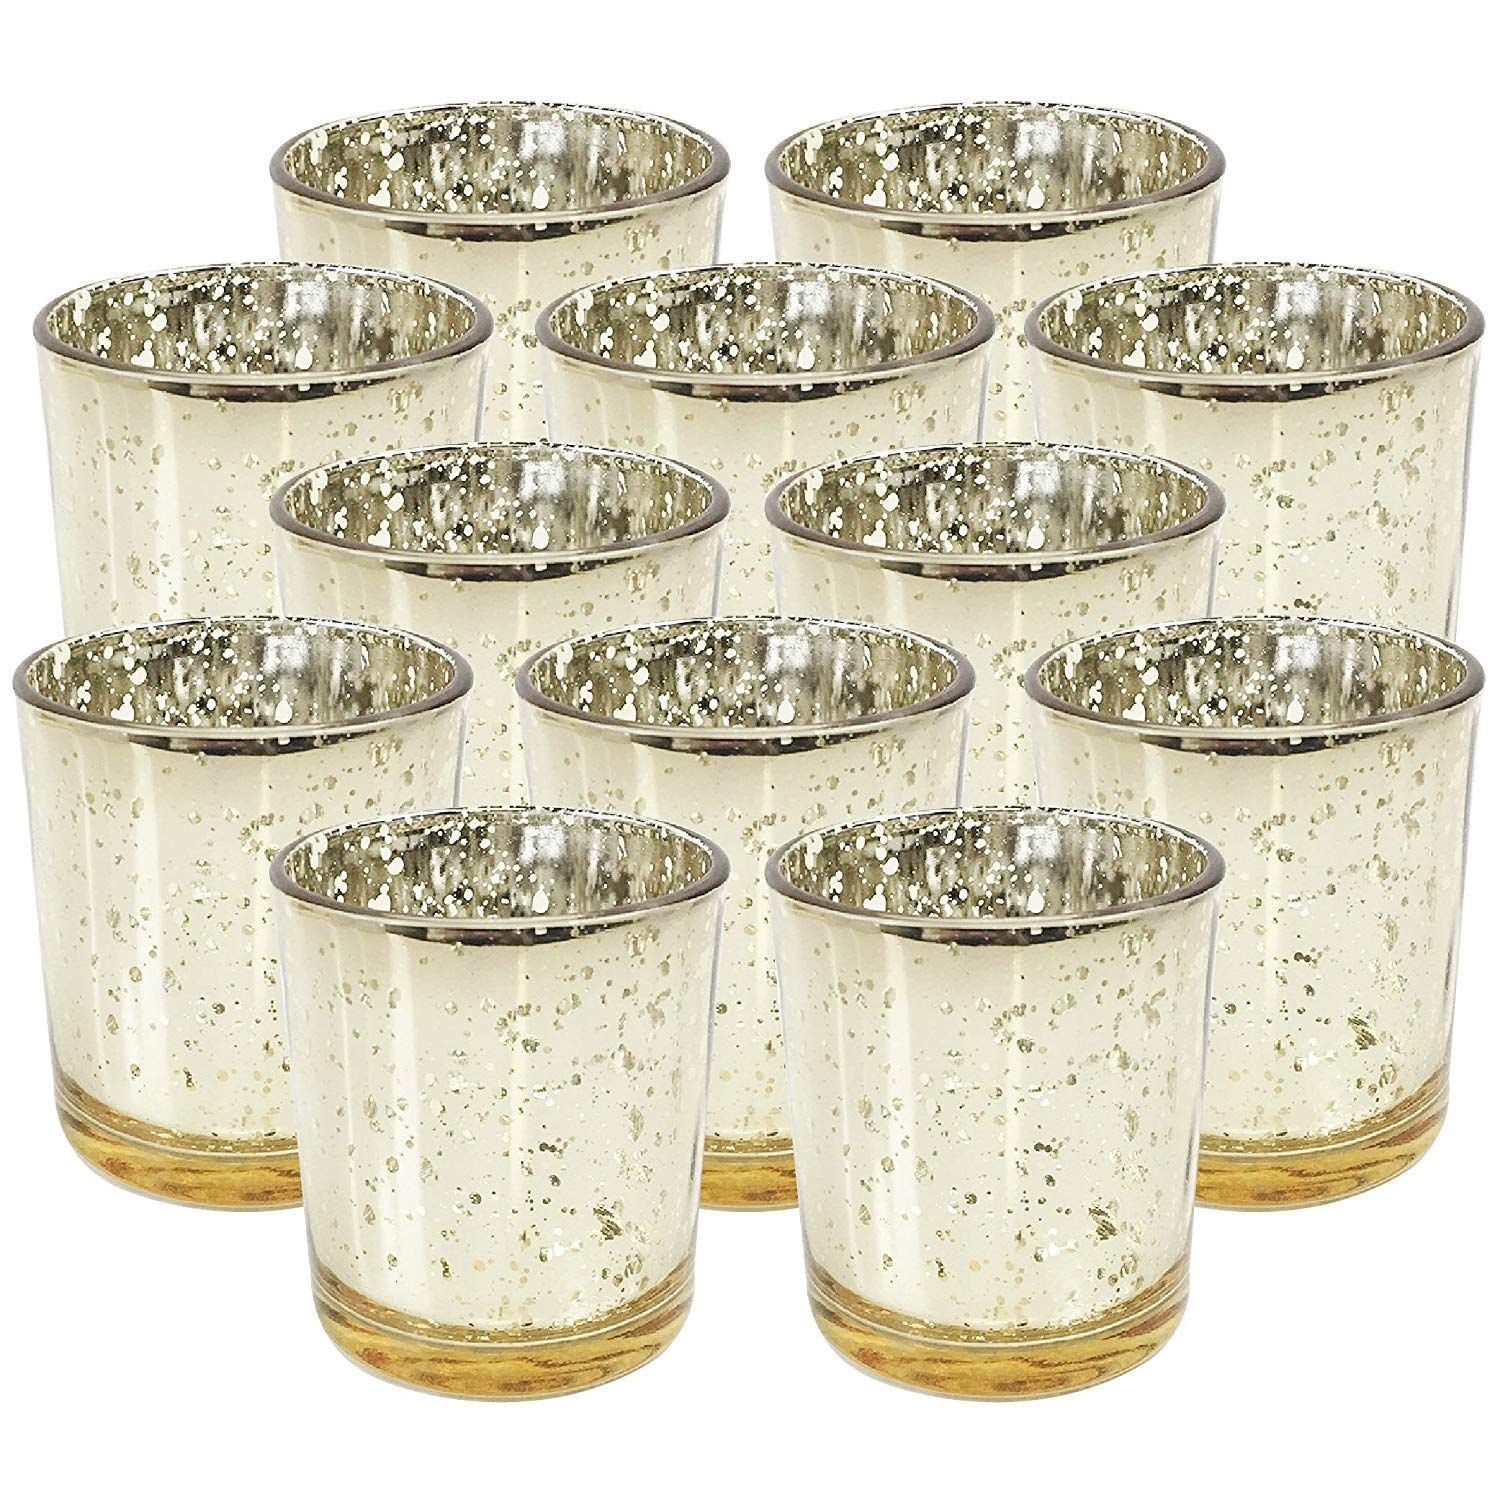 mercury glass vases of gold mercury glass vases lovely amazon just artifacts mercury glass regarding gold mercury glass vases lovely amazon just artifacts mercury glass votive candle holders 4in